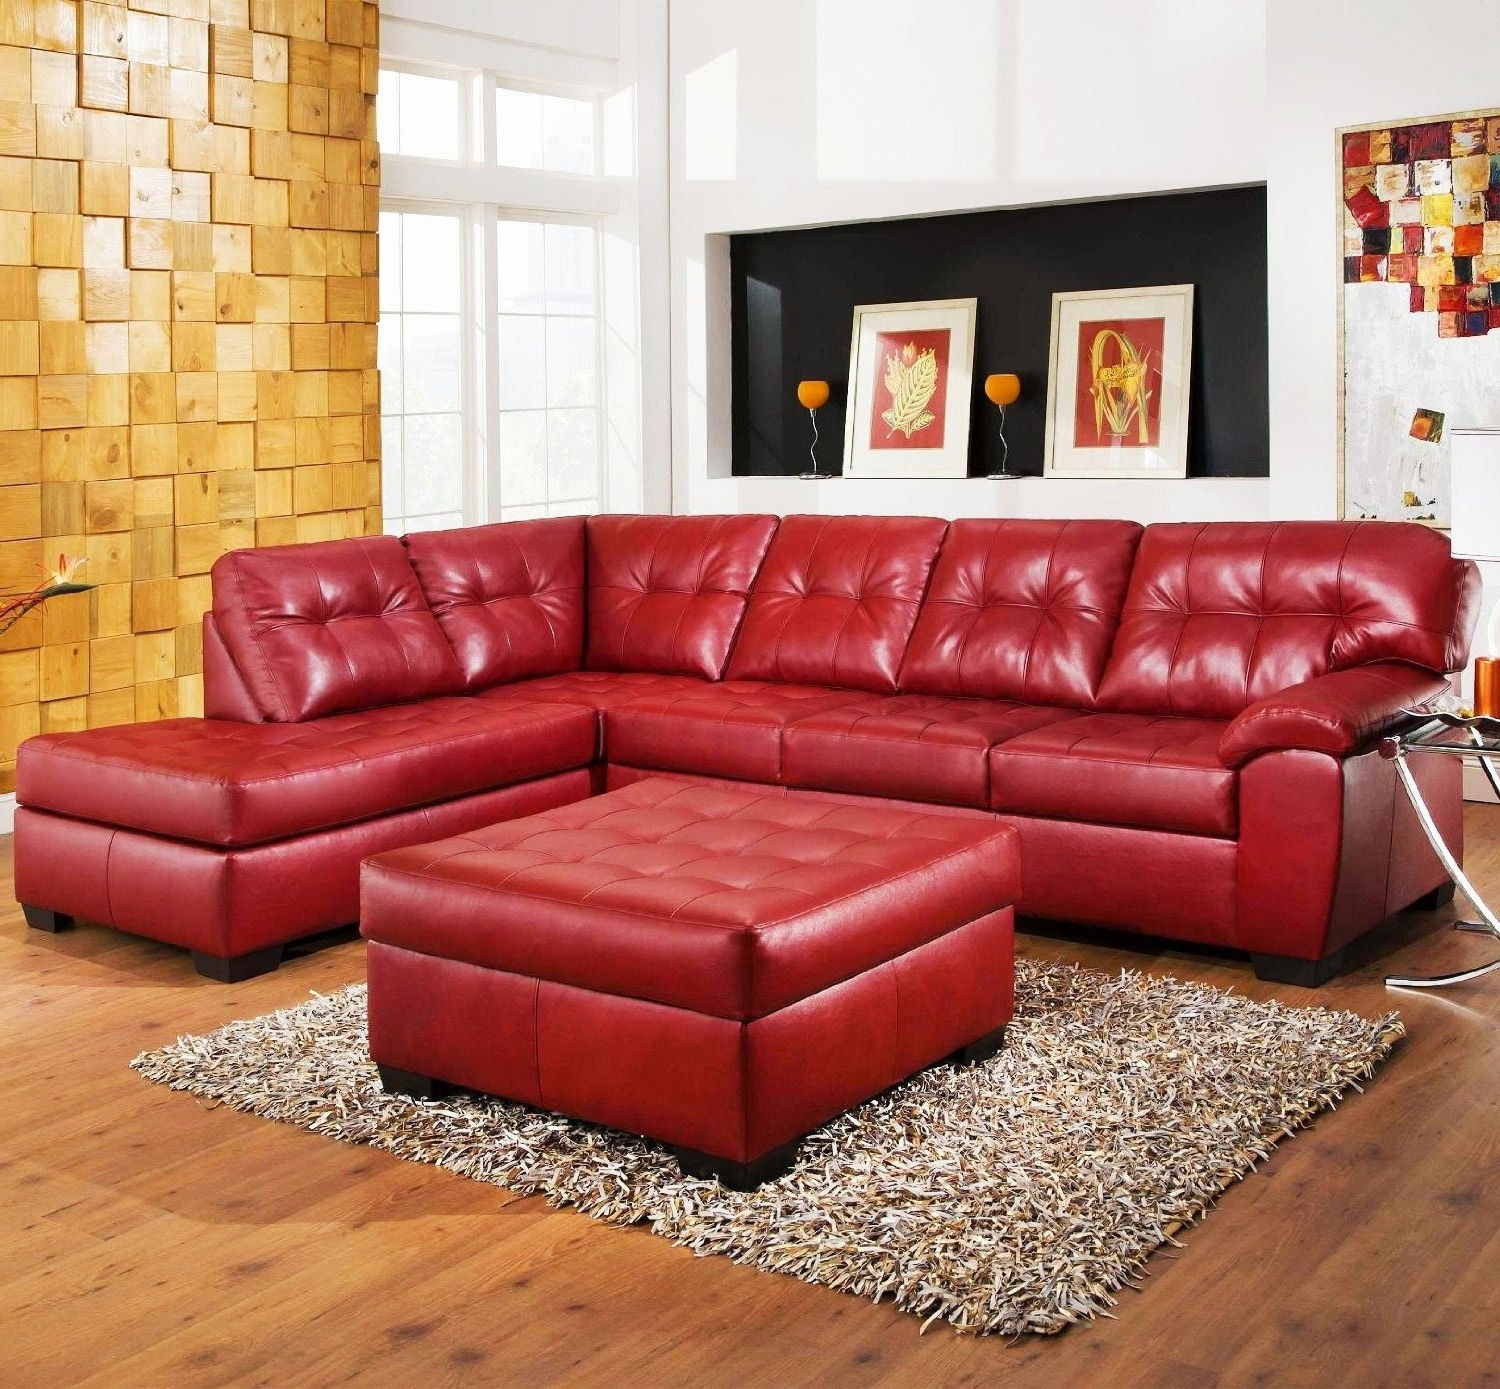 Preferred Red Leather Sectional Sofas With Ottoman Pertaining To Red Couch: Red Leather Sectional Couch (View 15 of 20)